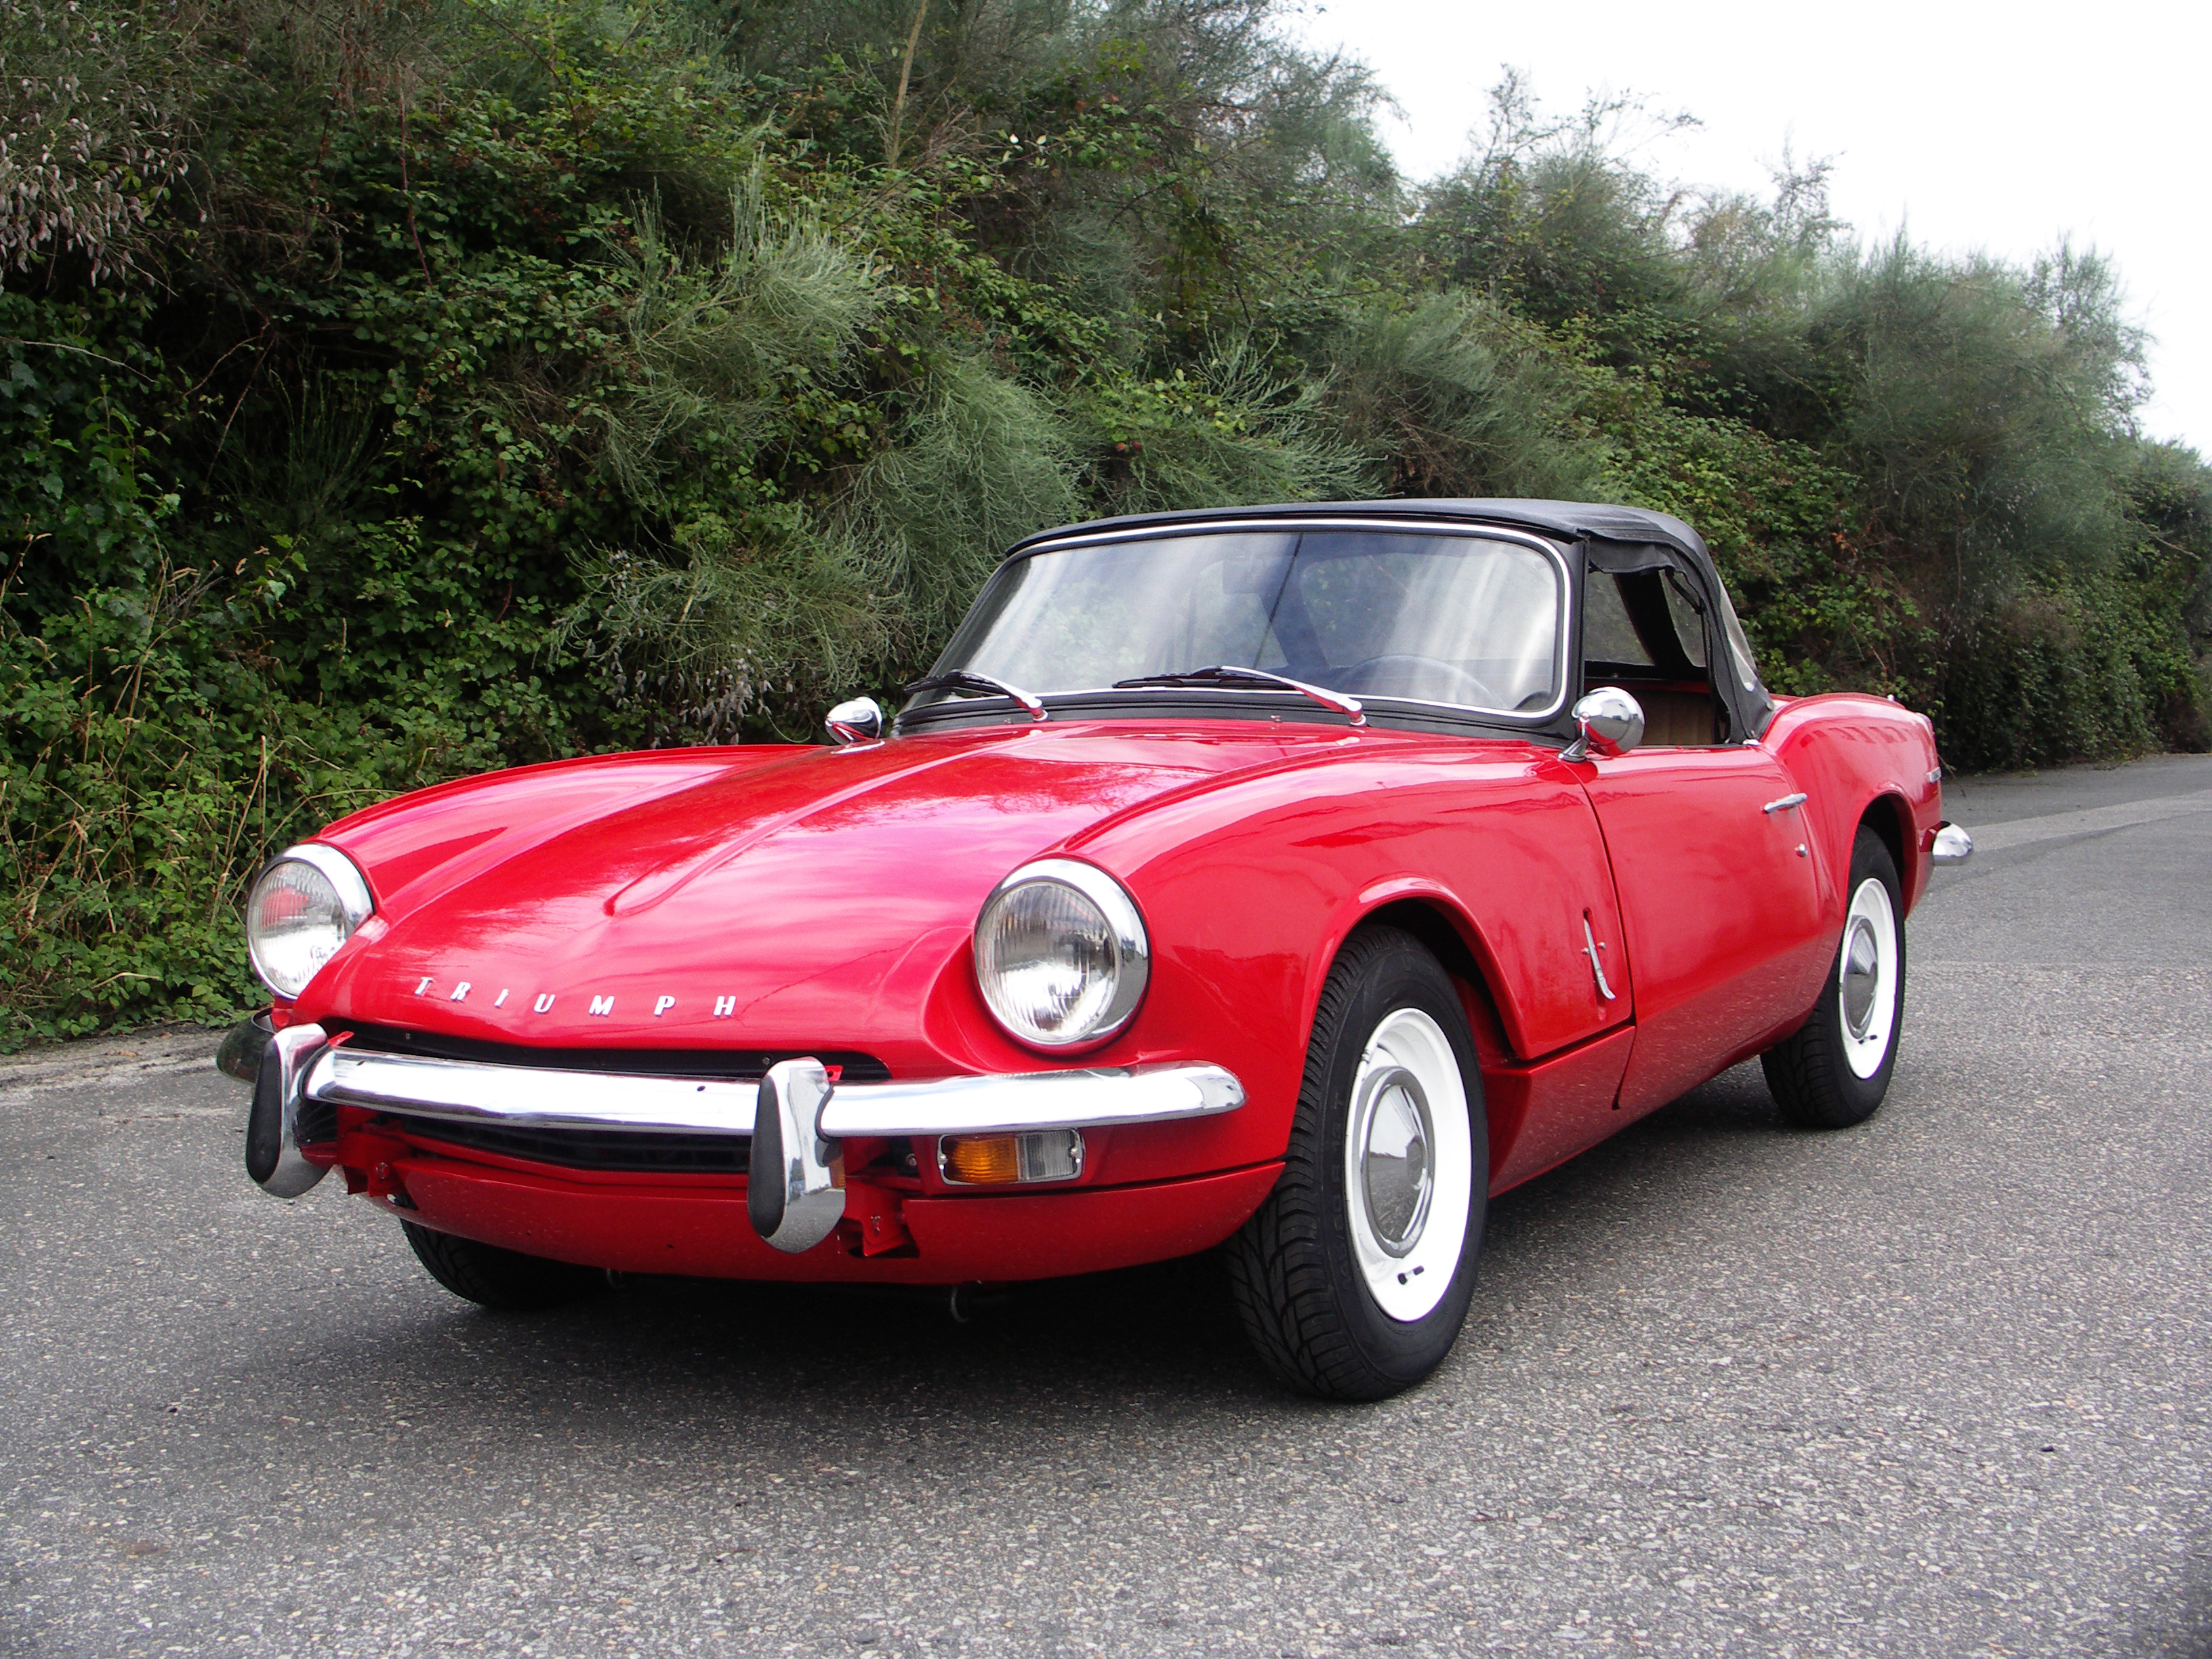 1970 Triumph Spitfire Photos, Informations, Articles ...